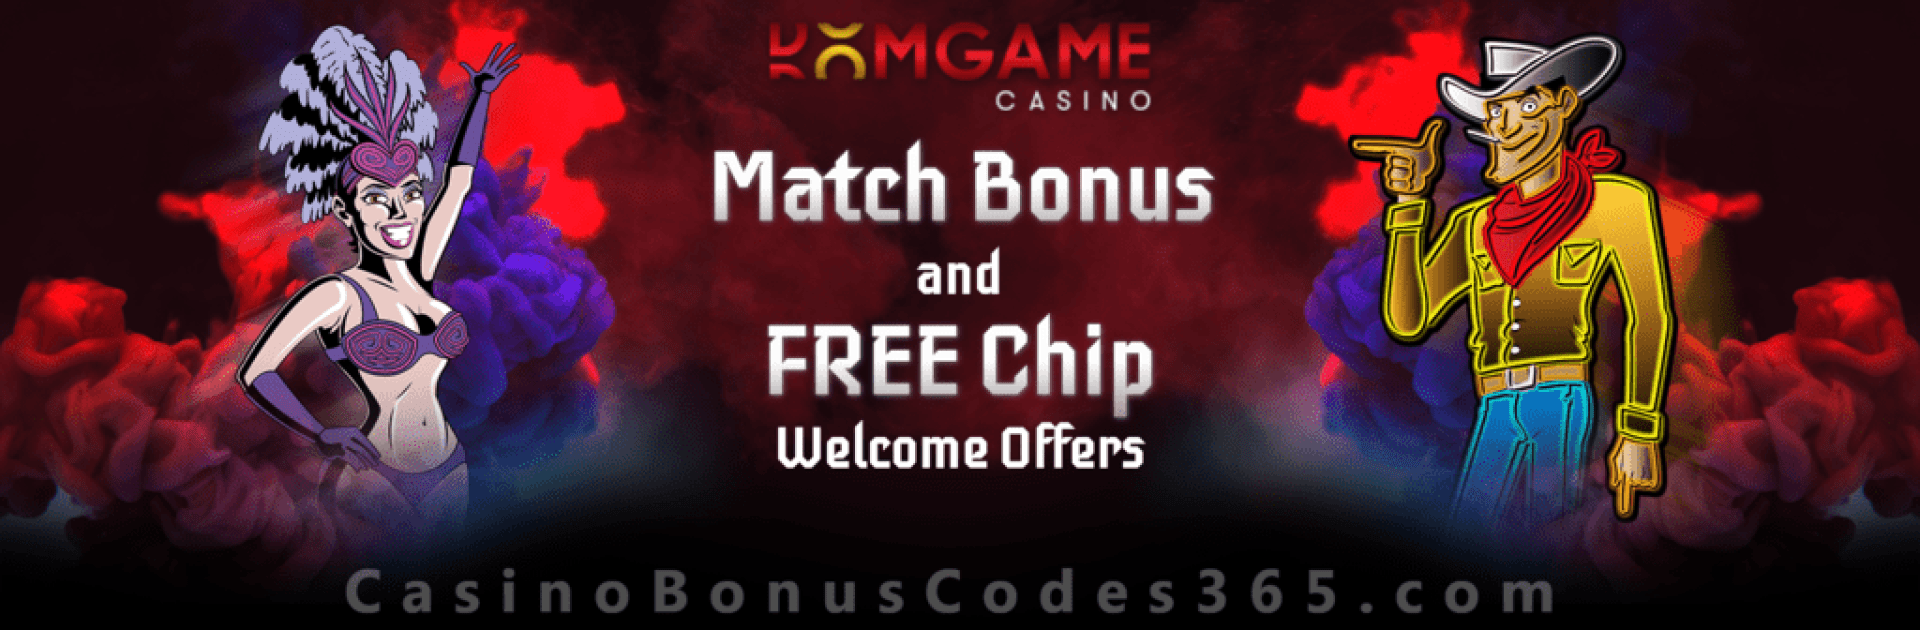 DomGame Casino Exclusive Daily Welcome Deal Match Bonus and FREE Chip